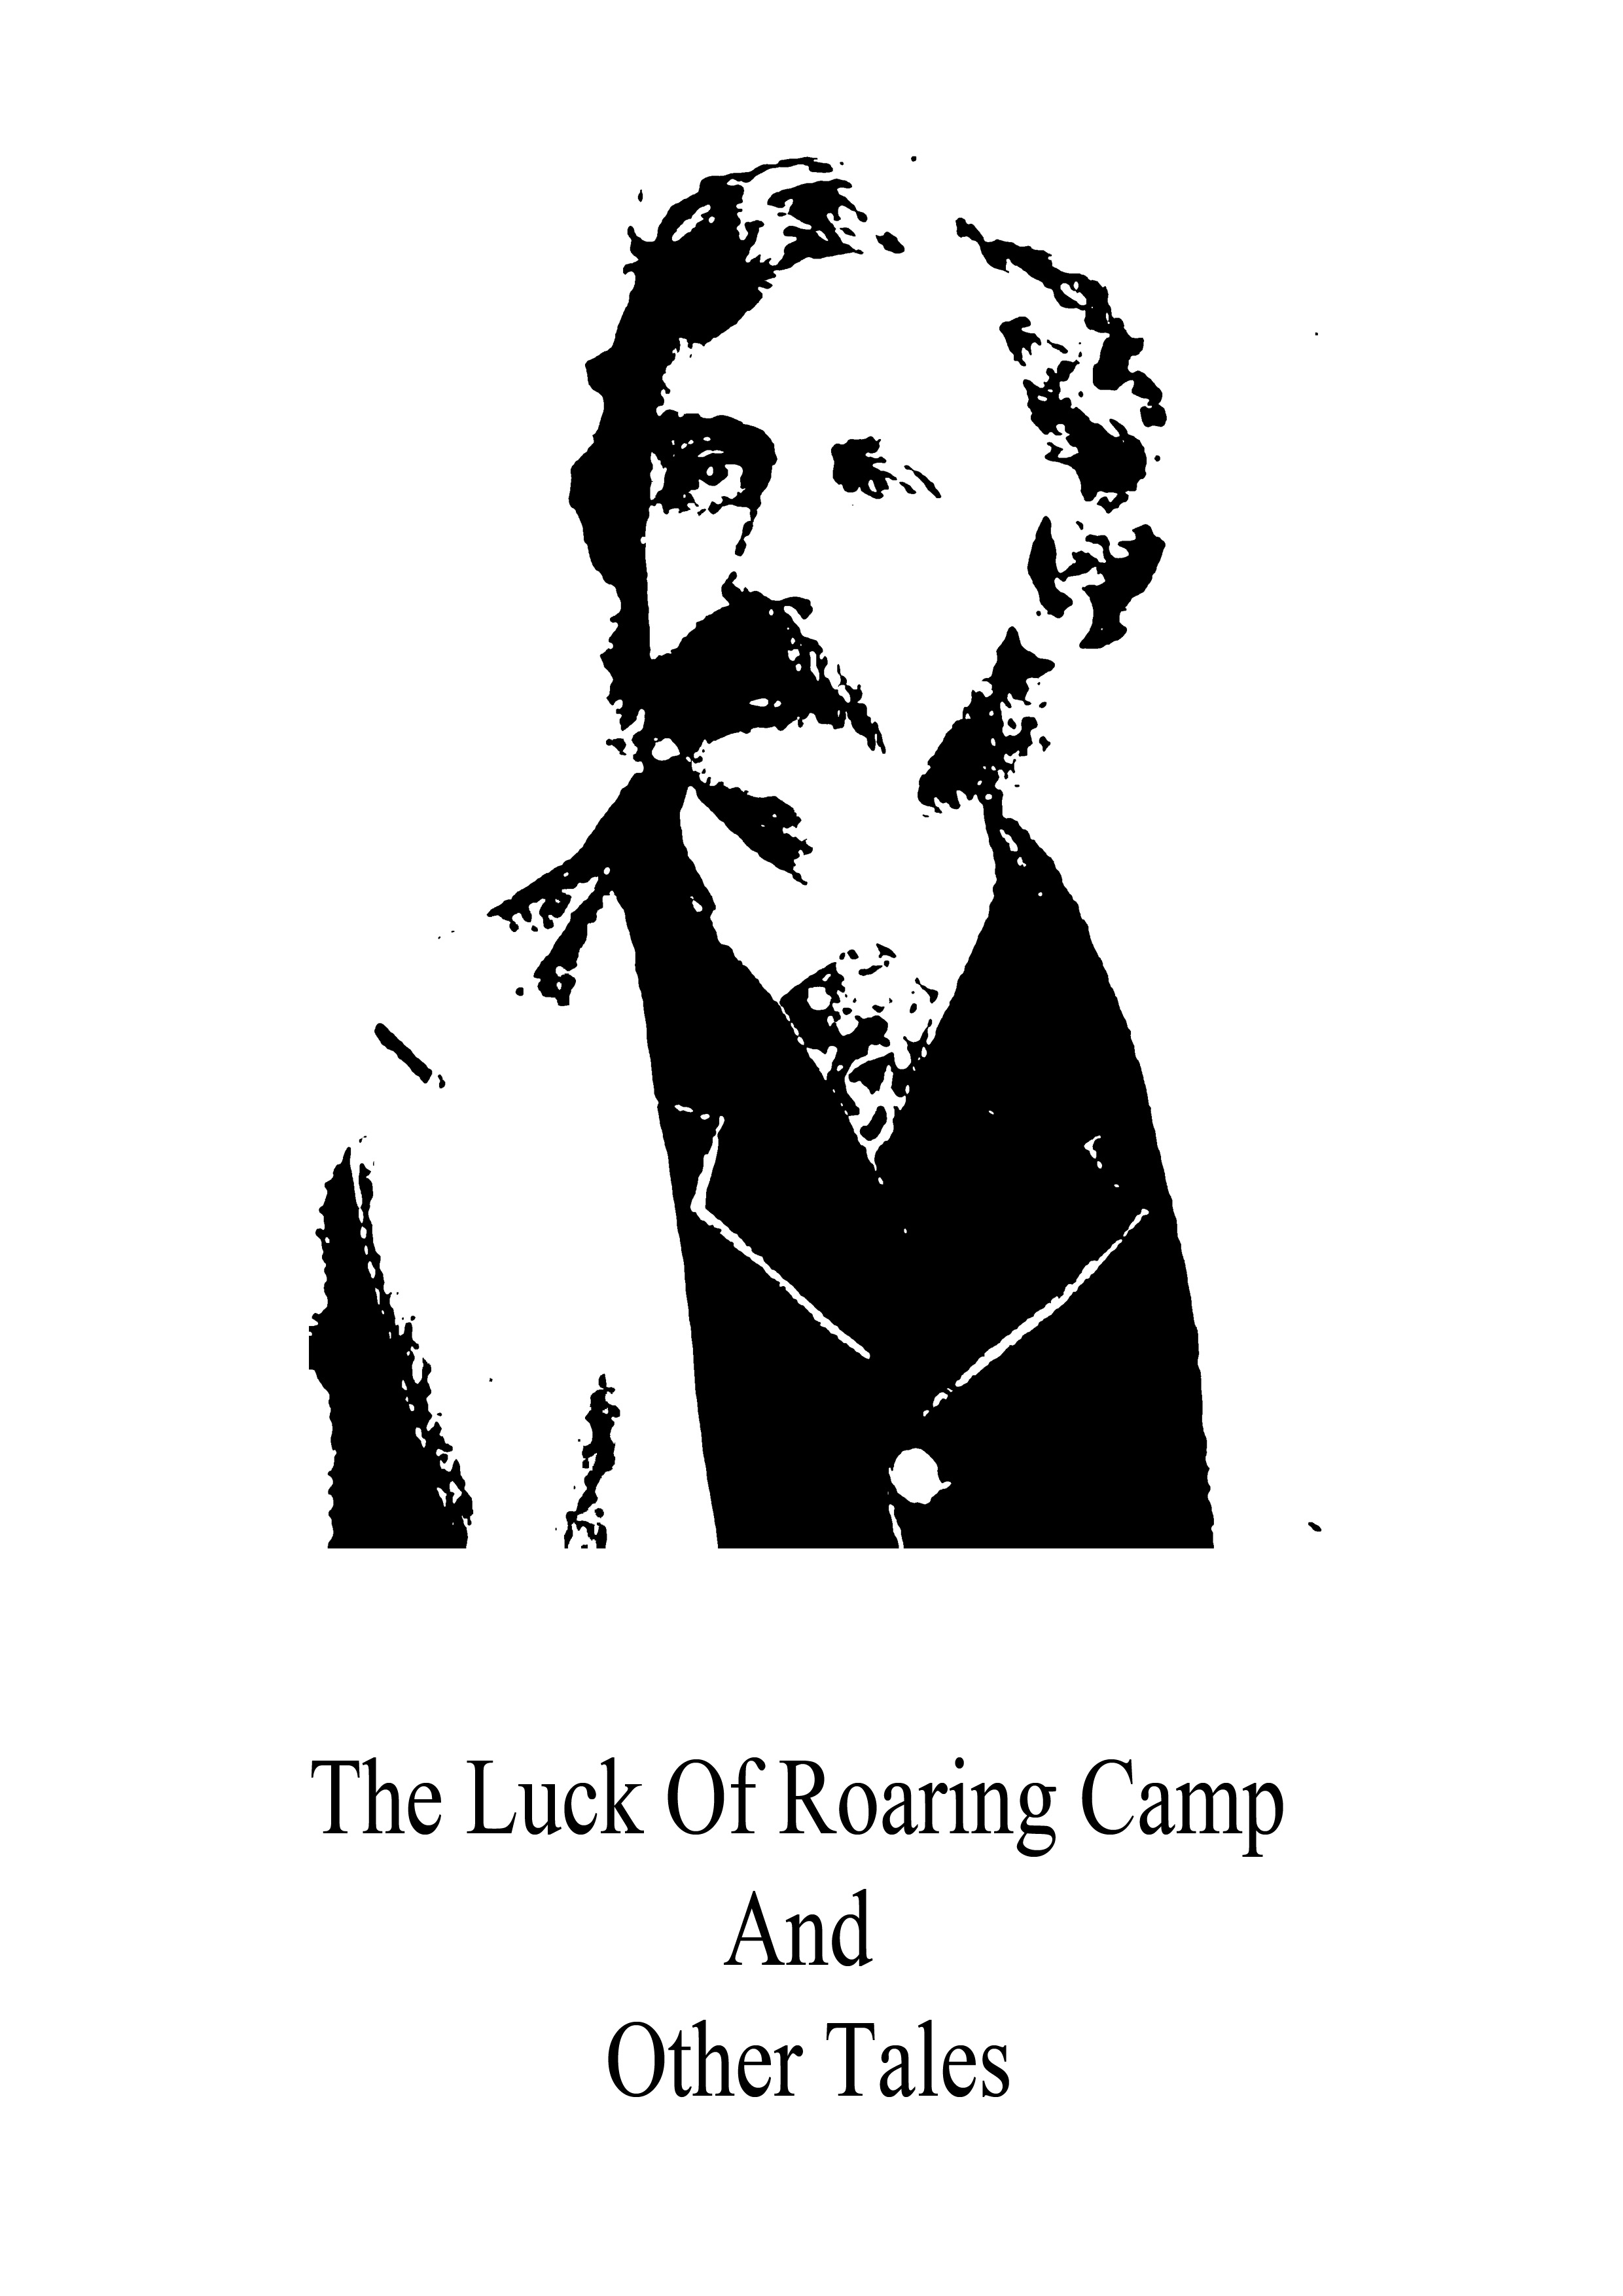 Bret Harte - The Luck Of Roaring Camp And Other Tales